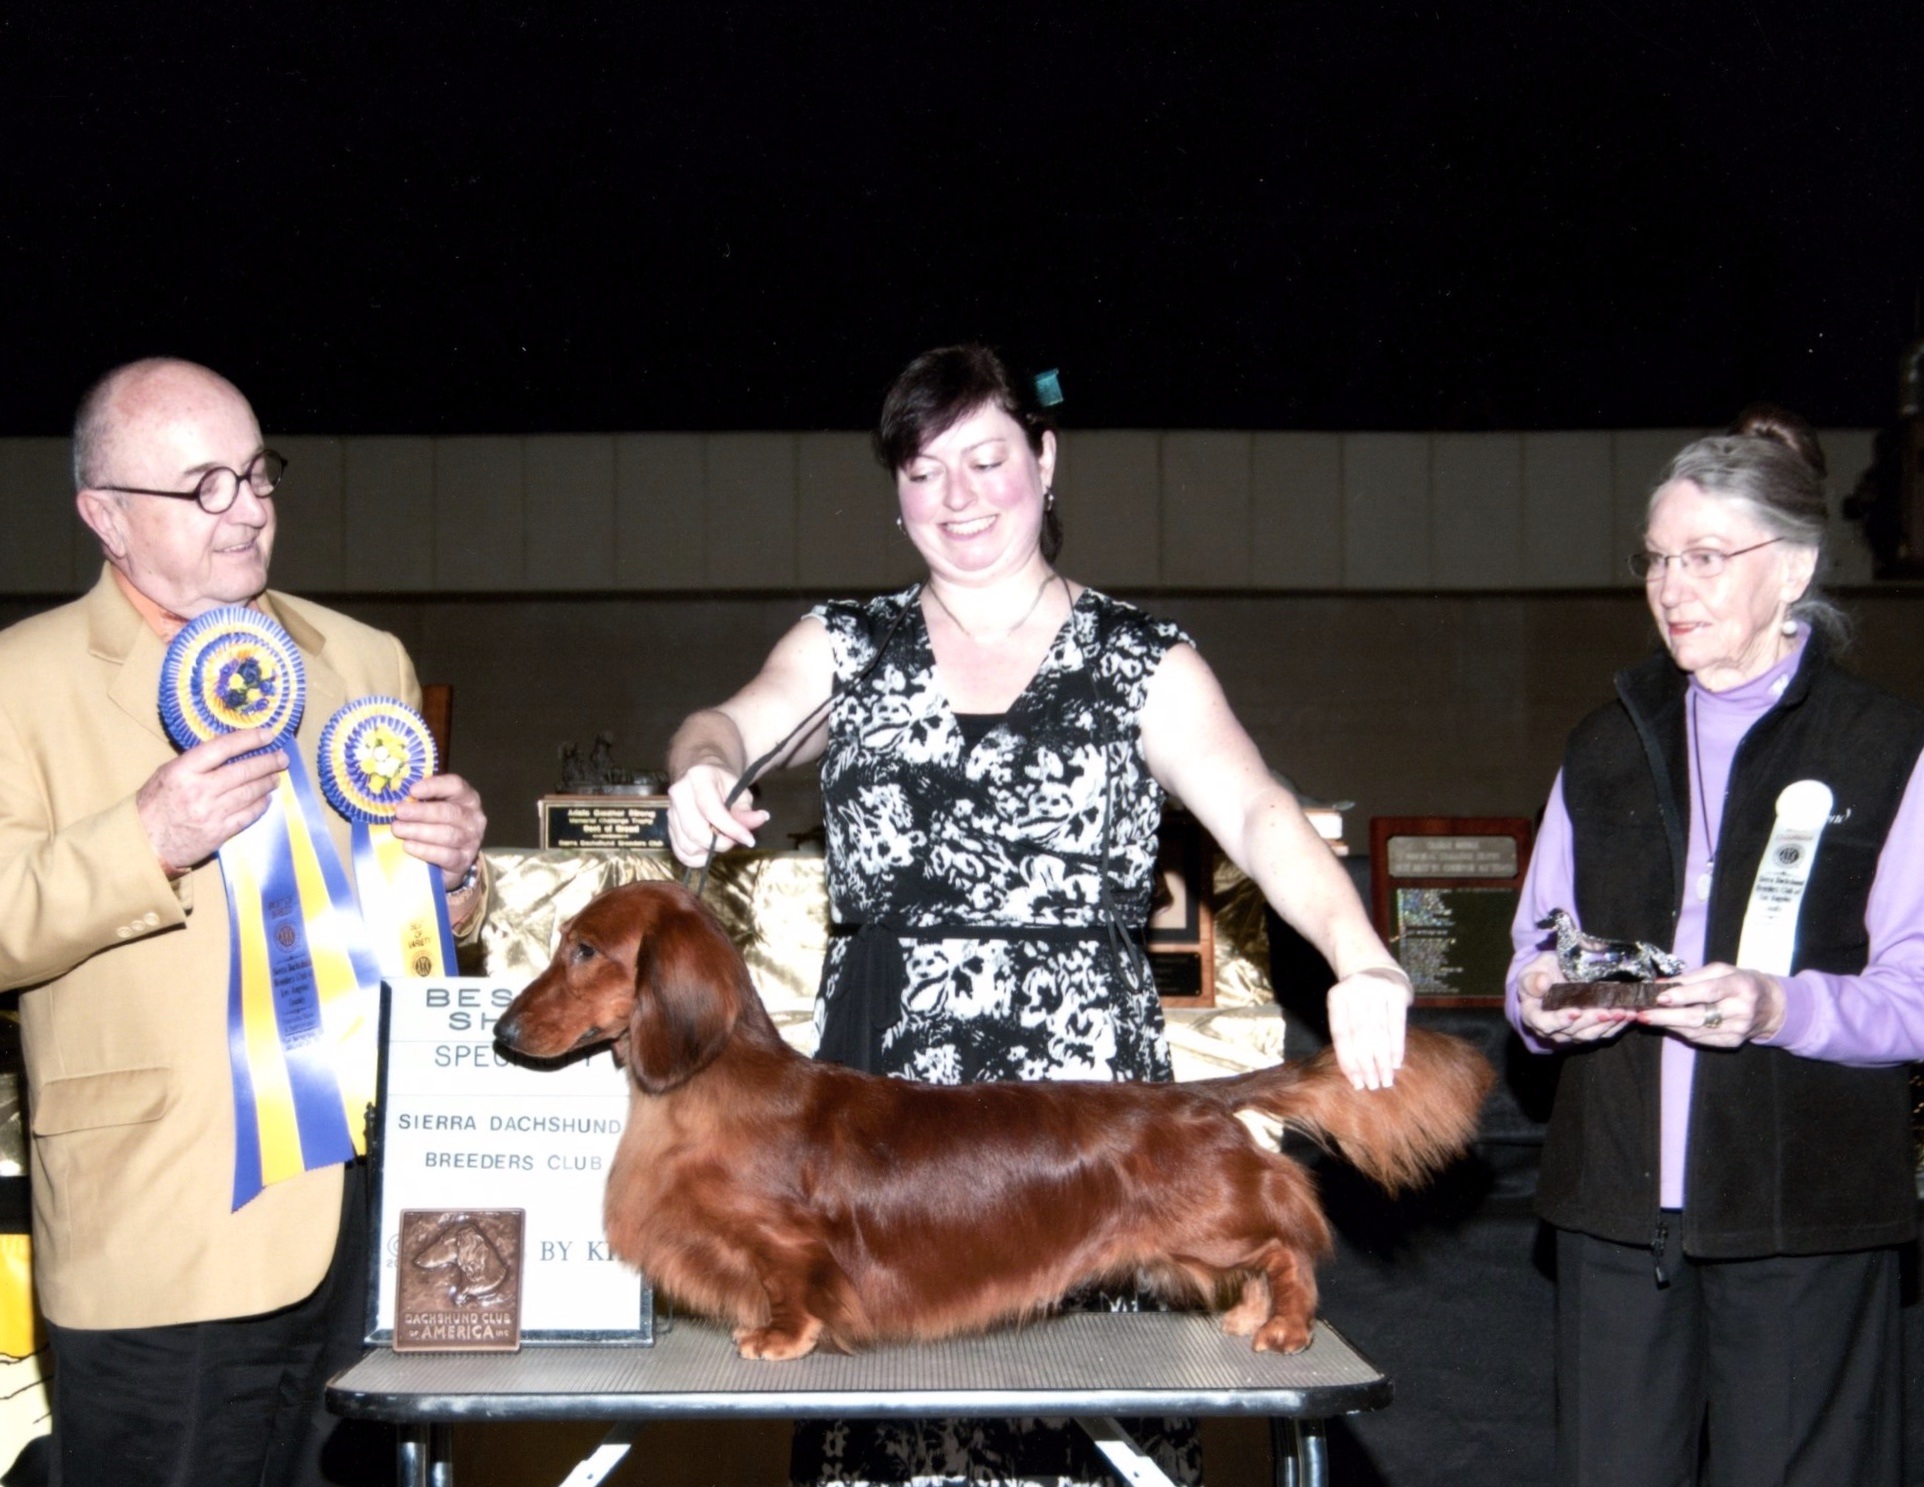 Brando - Multi Best in Specialty ShowGCHB Pramada's Living Legend L